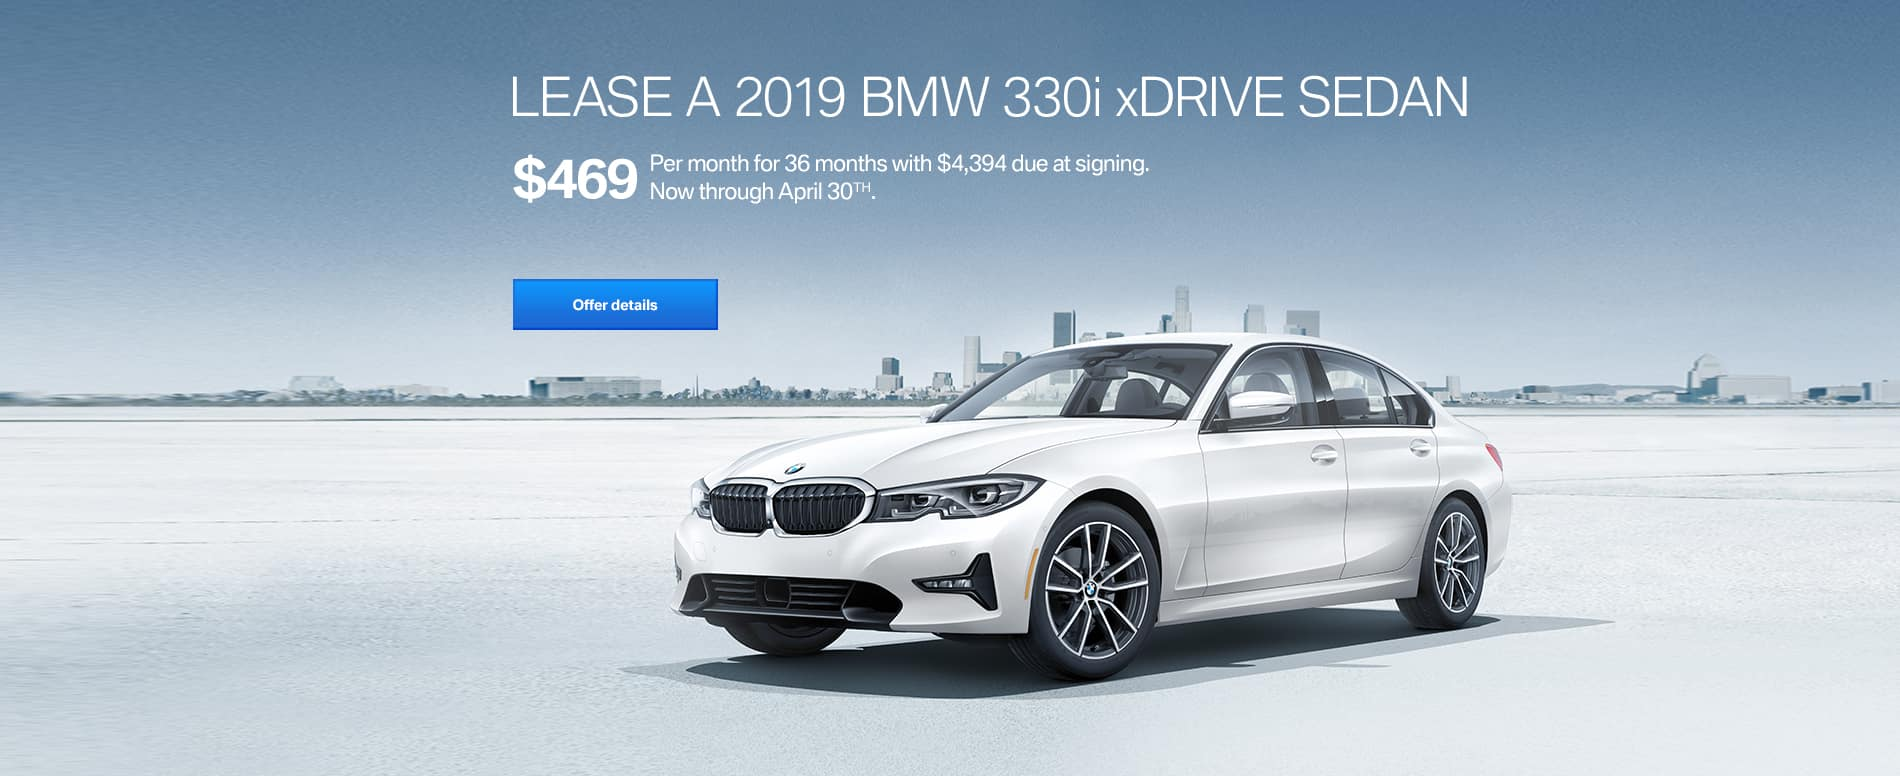 April 2019 BMW 330i xDrive